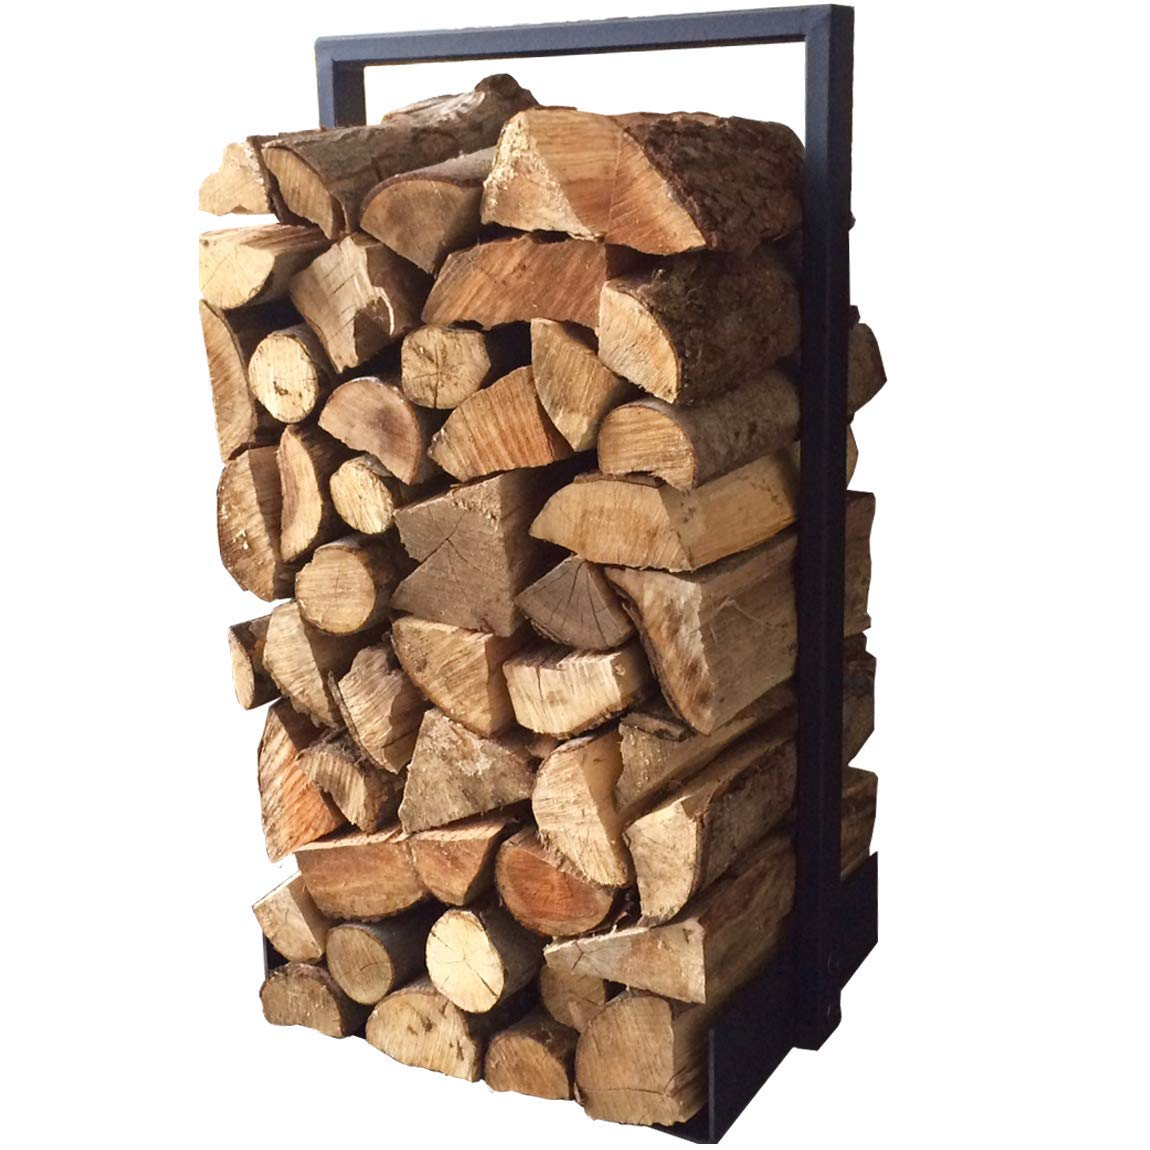 Firewood log rack for home fire place decoration (indoor/outdoor) modern and rustic style (Black) Hand Made in North America by Y-Furniture Design